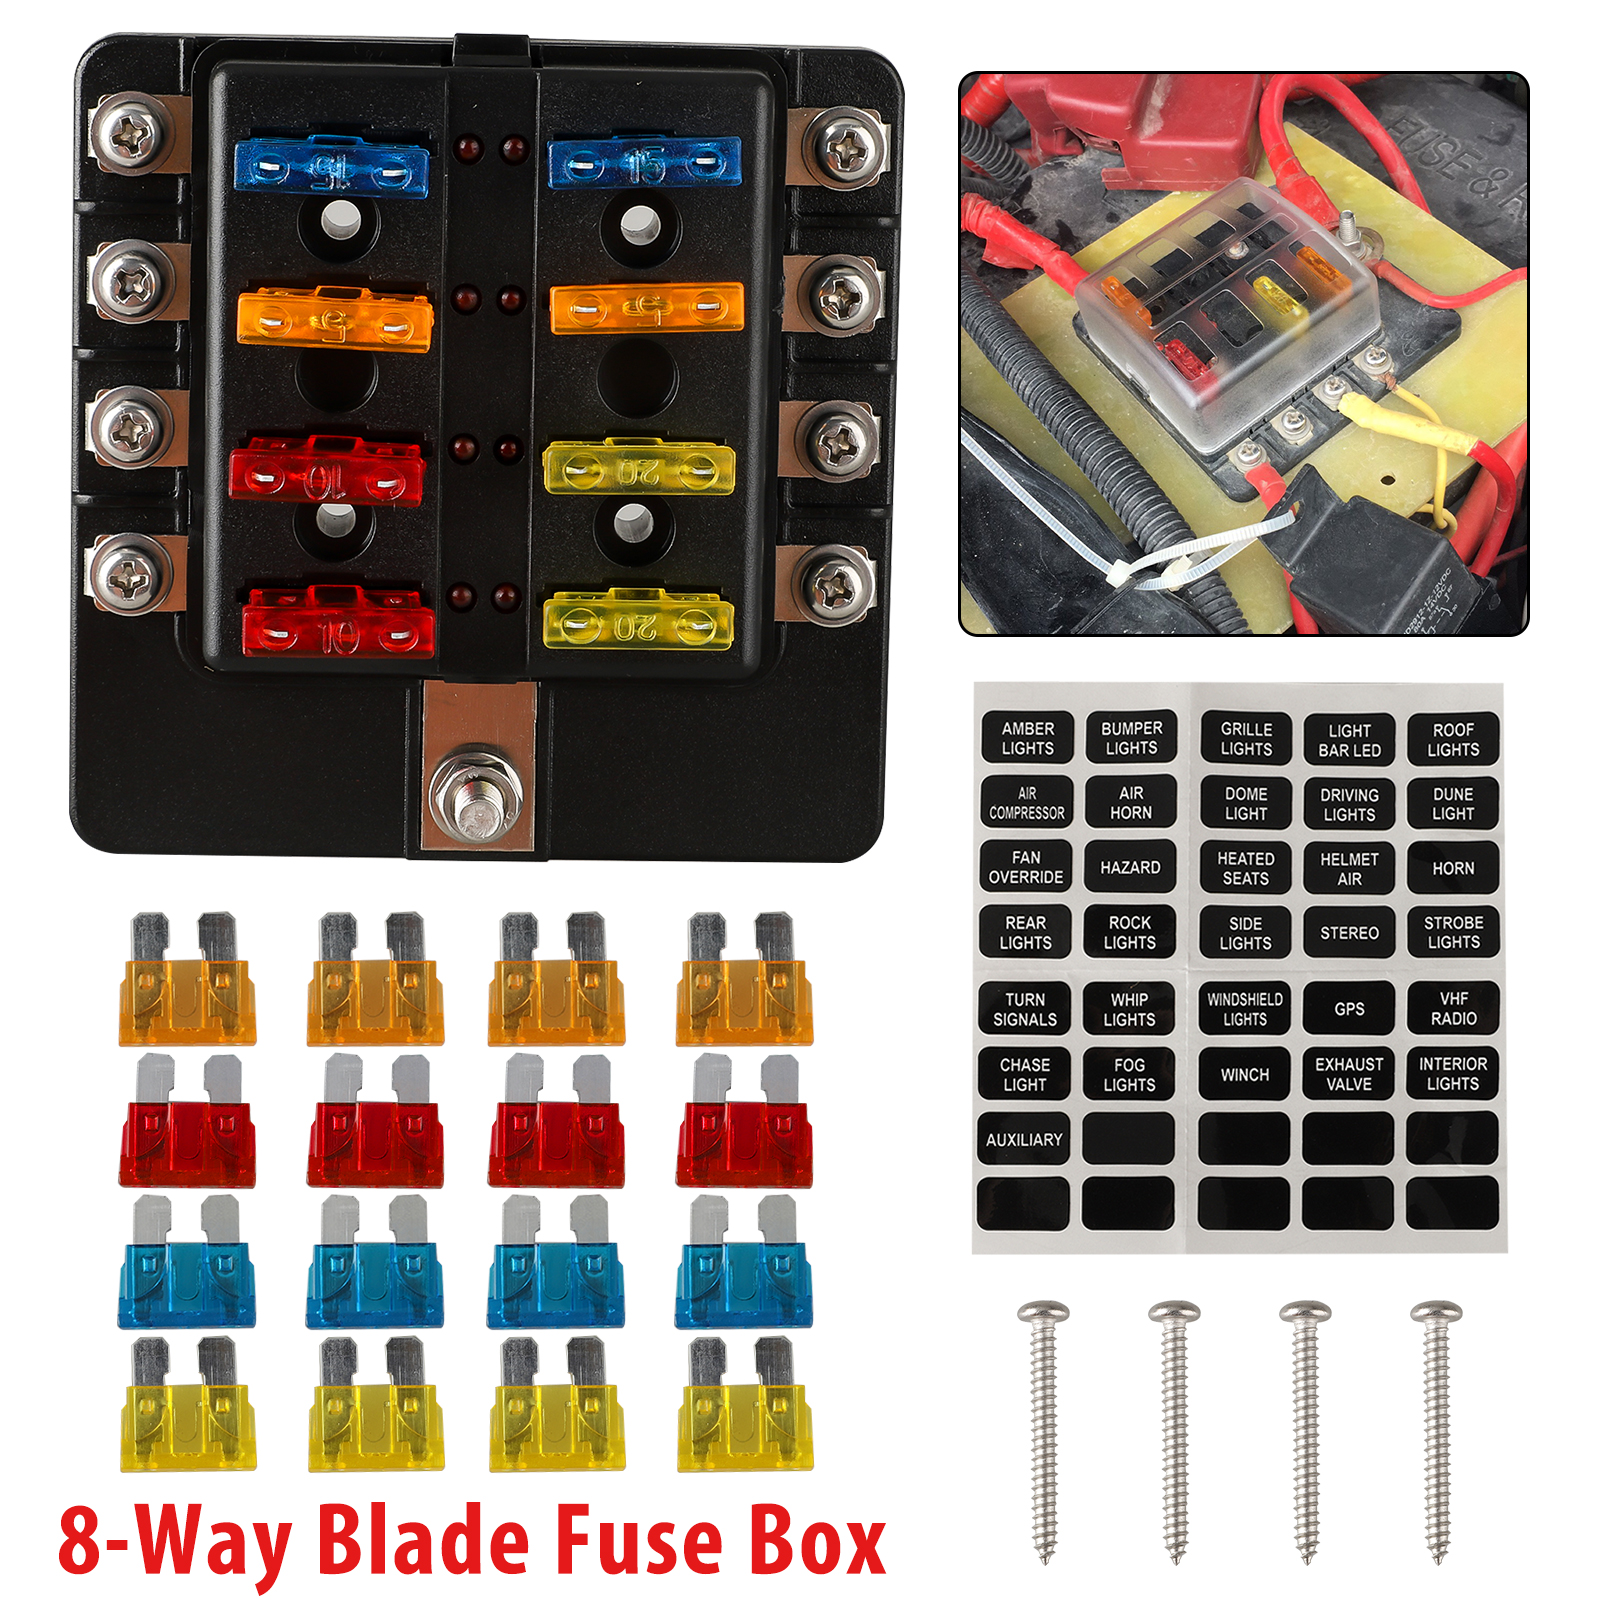 [SCHEMATICS_49CH]  TSV 8-Ways Blade Fuse Box Holder for Cars Buses Subways Airplanes Boats  Ships Campers, ATO / ATC Fuse Box, 32V DC Auto Marine Fuse Block with Clear  Protective Cover, Comes with 5A | Dc Fuse Box For Camper |  | Walmart